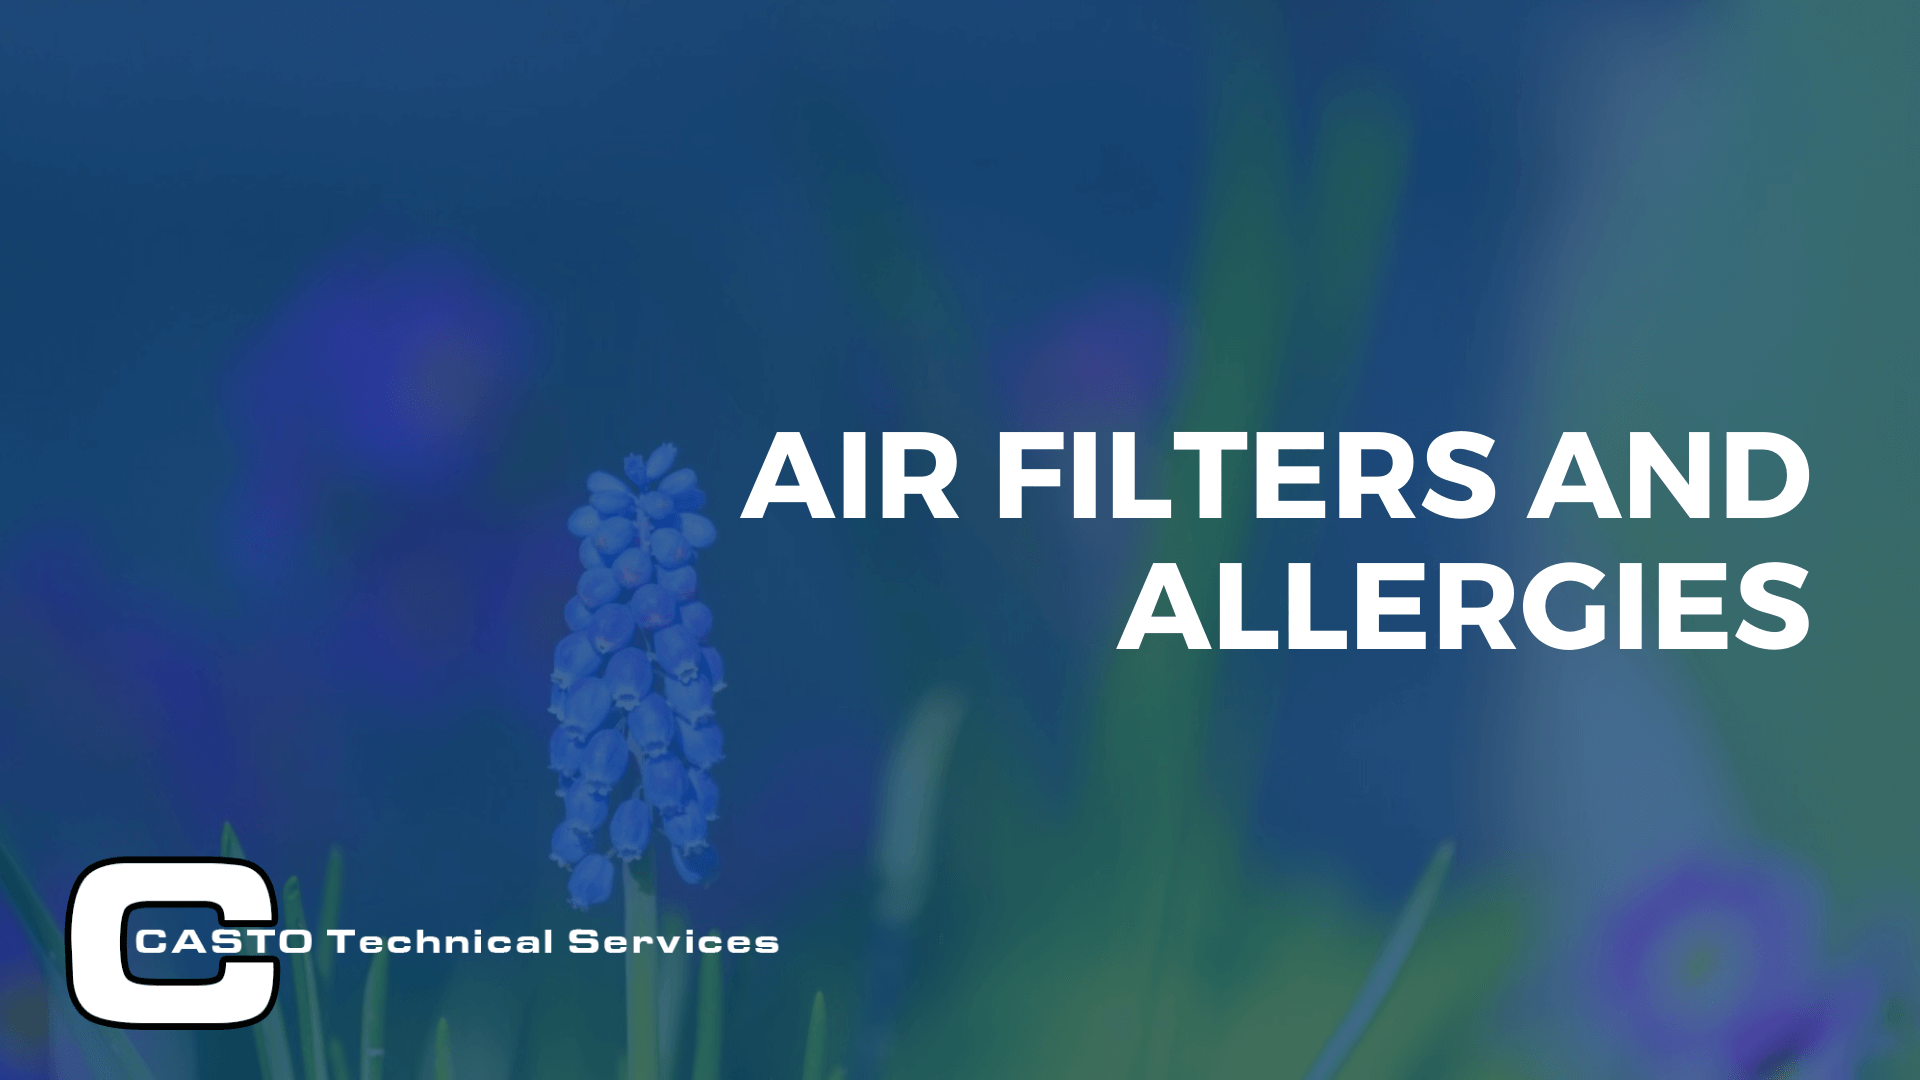 Air Filters and Allergies - Casto Technical Services Blog